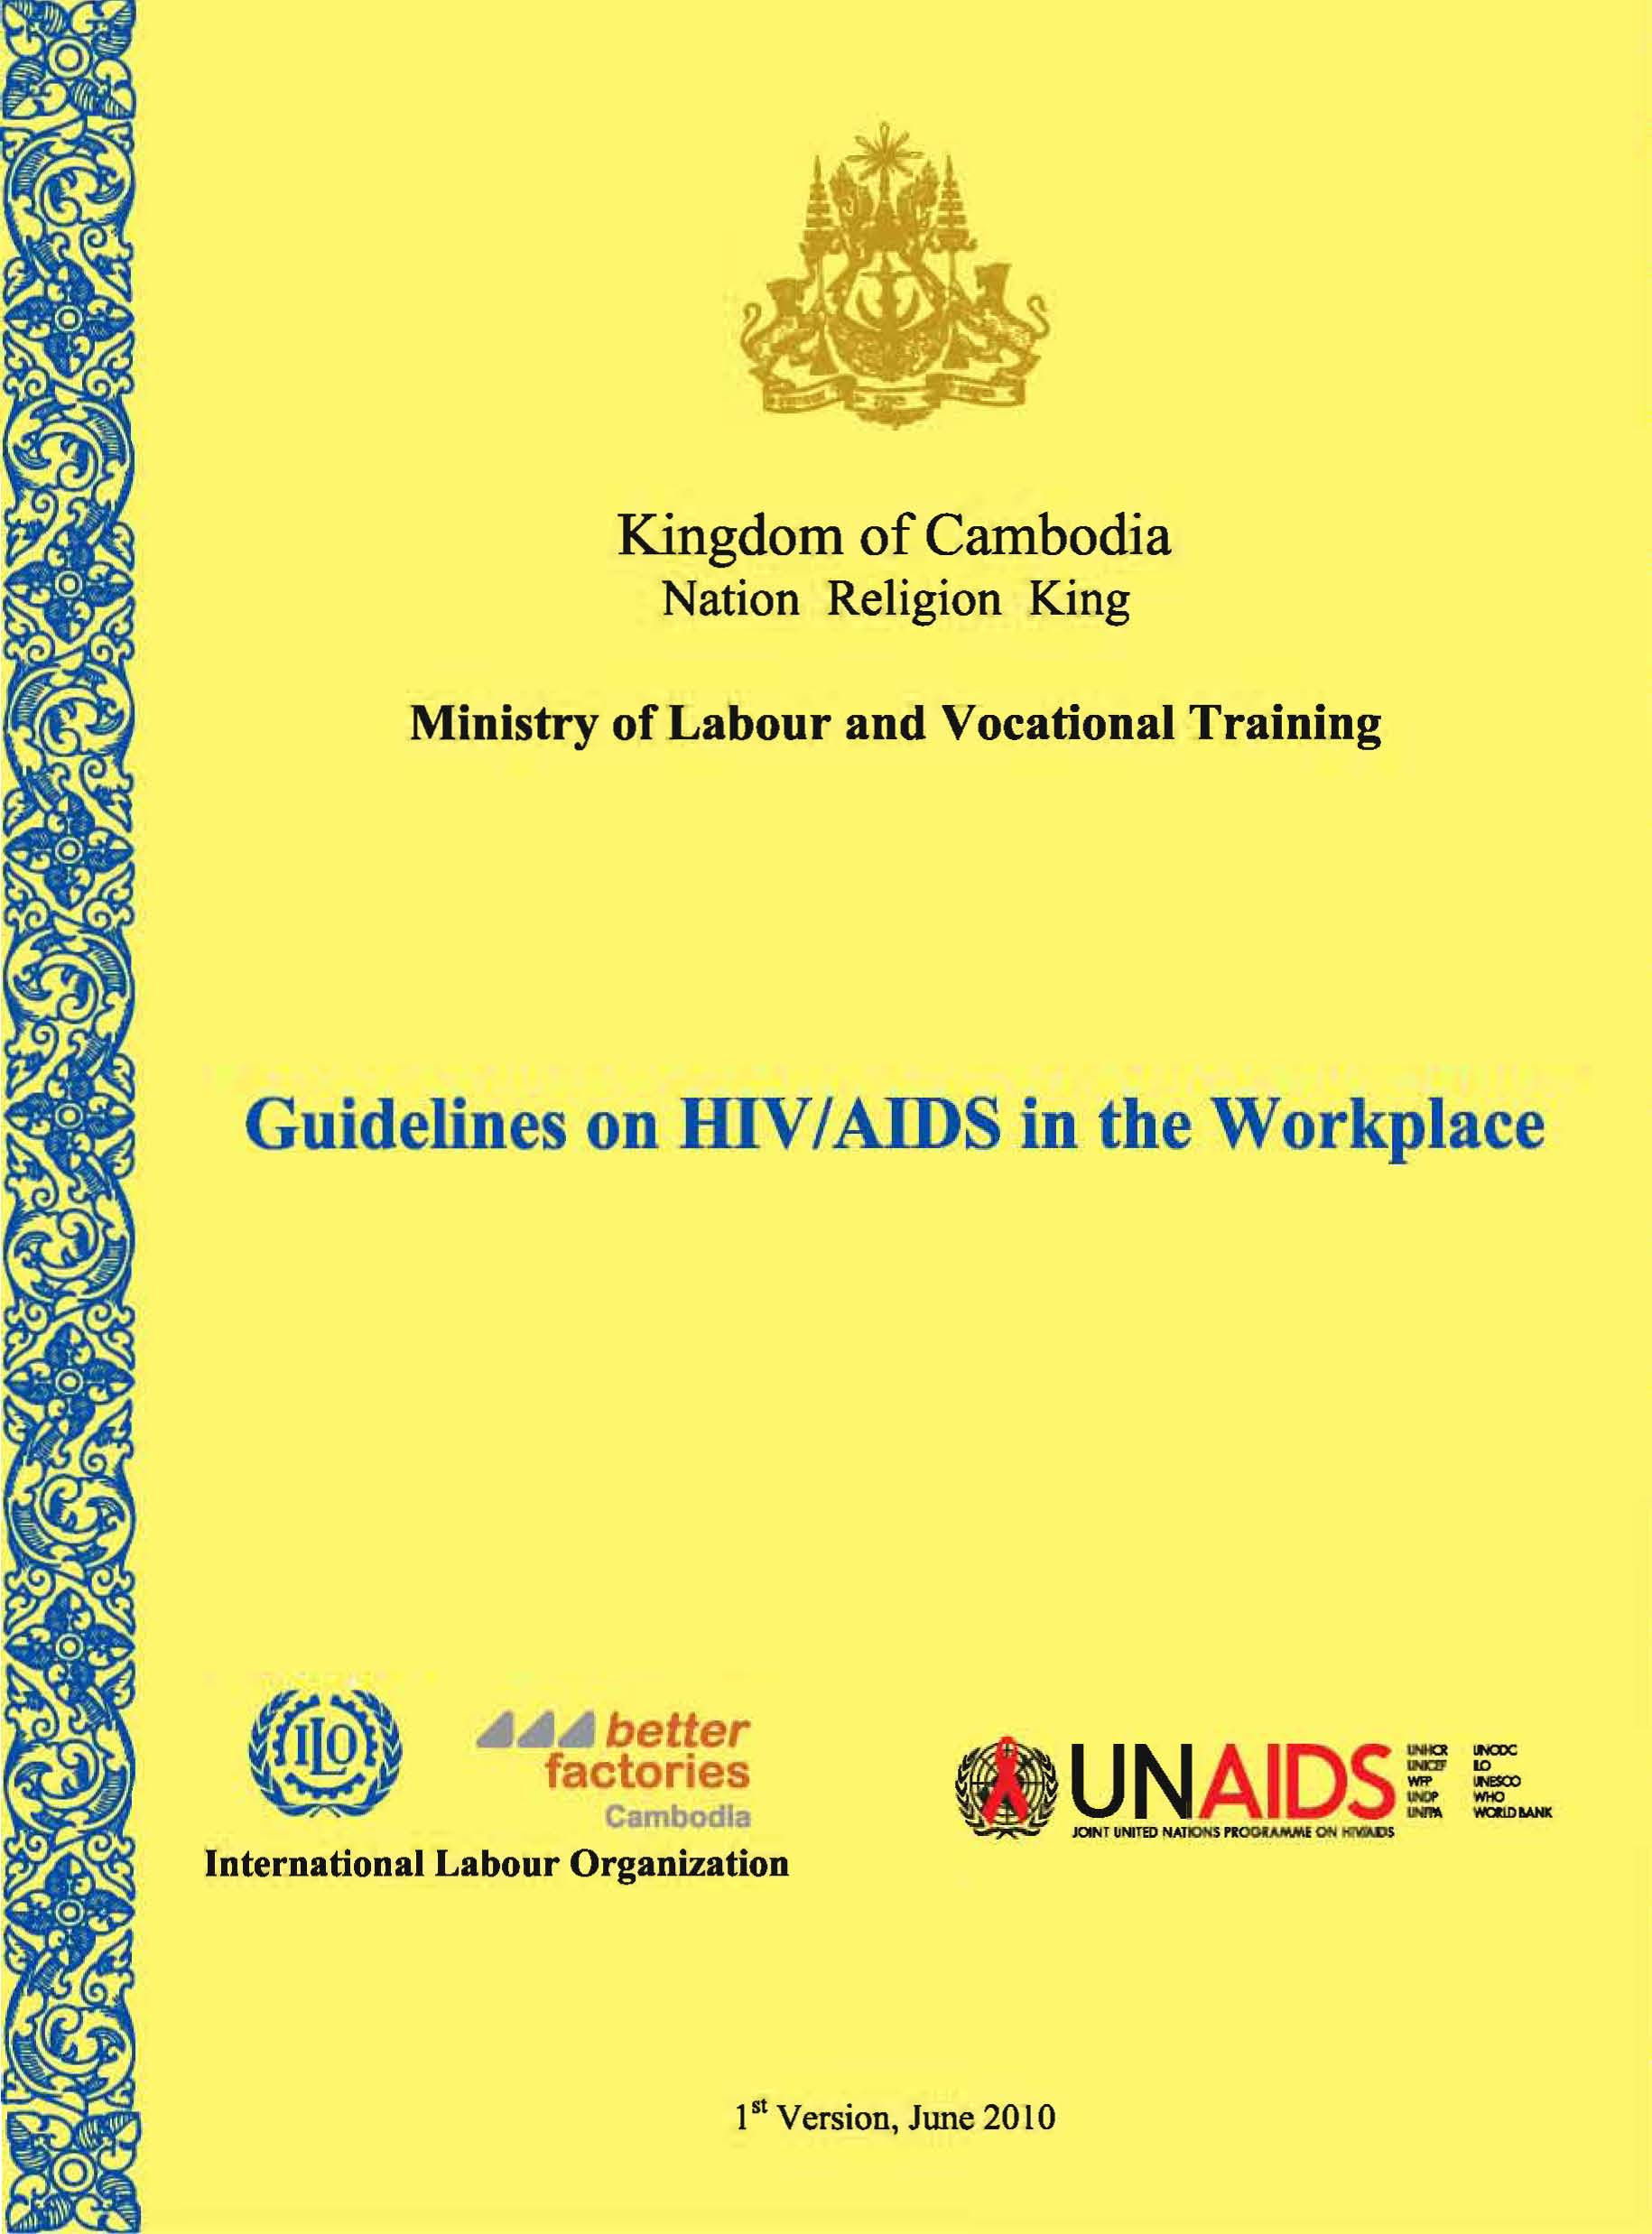 Guidelines on HIV/AIDS in the Workplace (English Language)